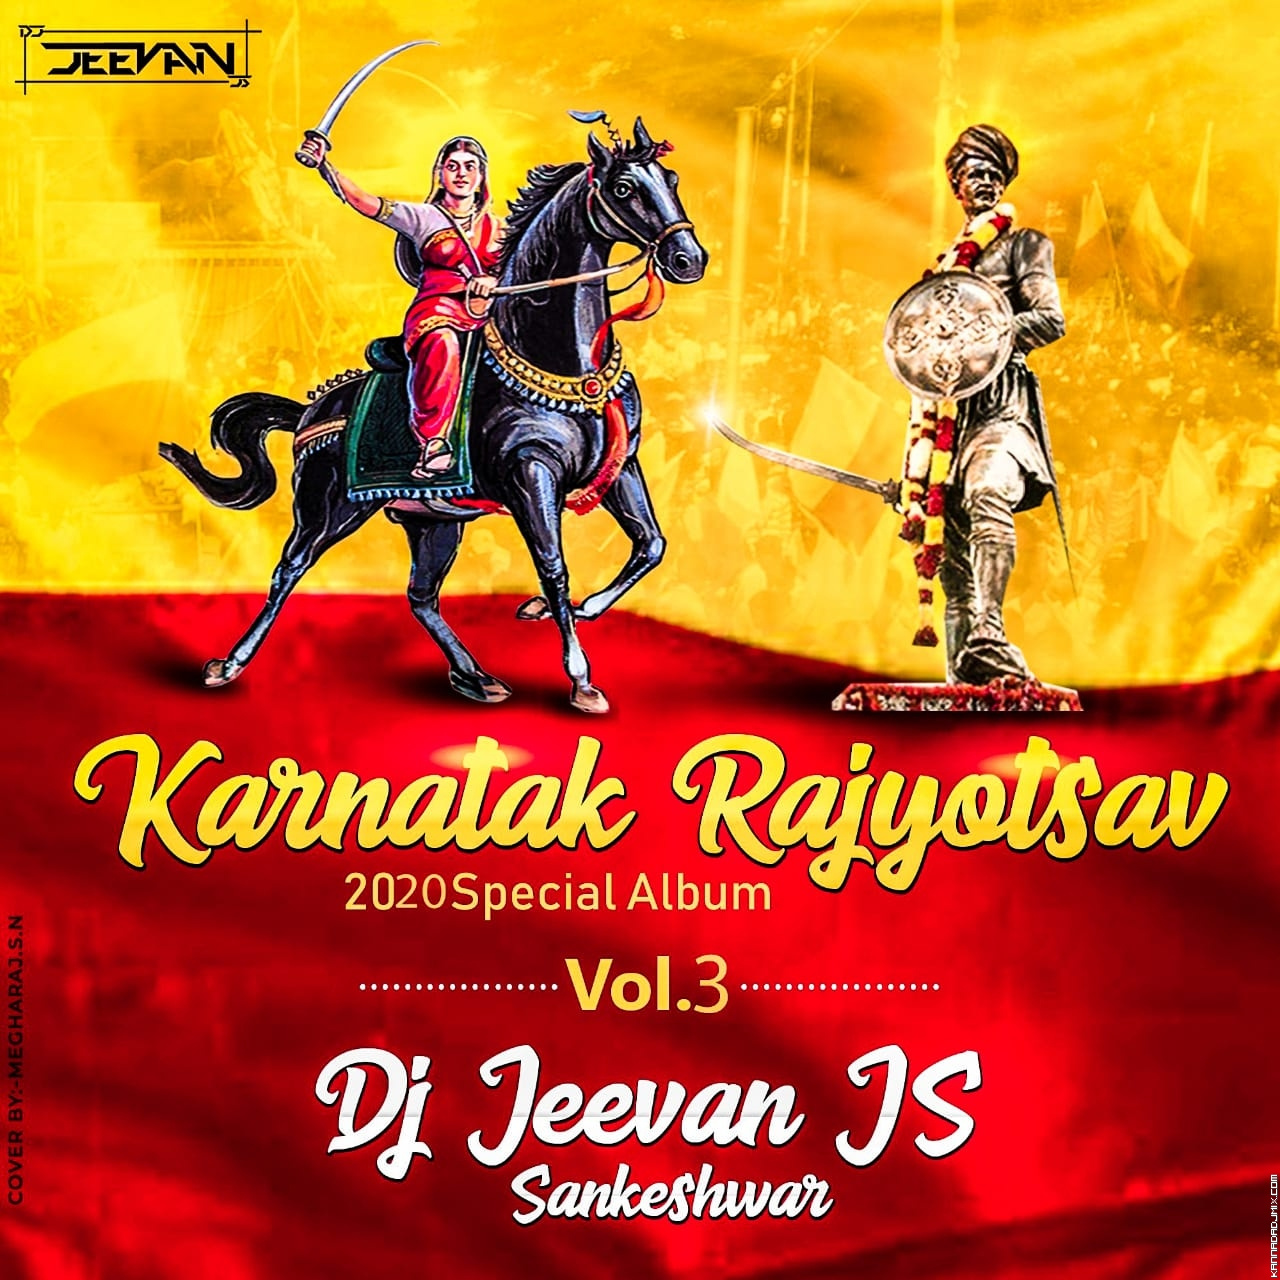 Huttidare In HORN Drop 2020 Mix By  Dj Jeevan Js Sankeshwar.mp3